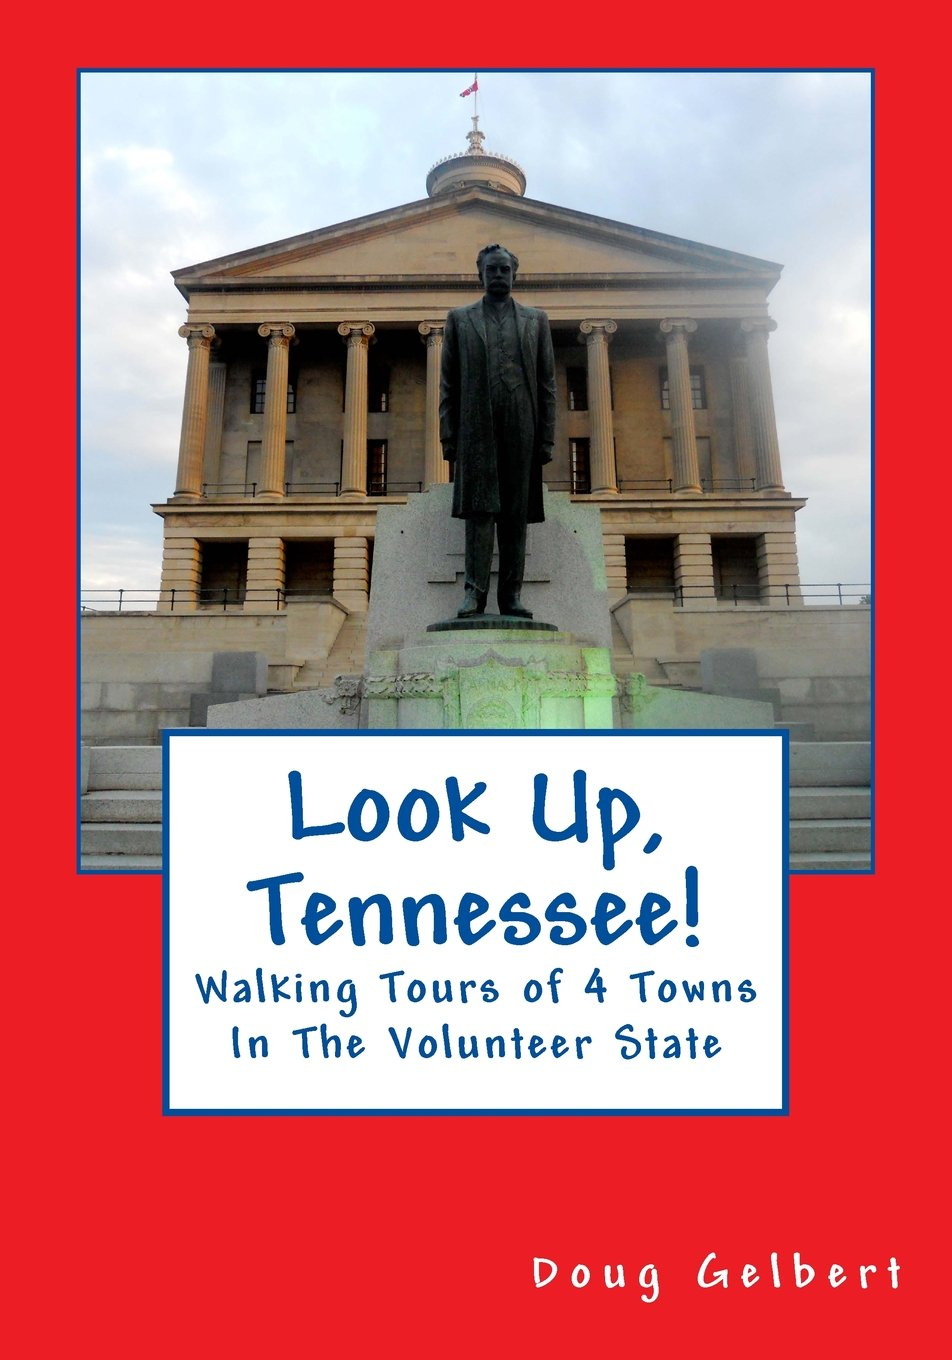 Look Up, Tennessee!: Walking Tours of 4 Towns In The Volunteer State ebook